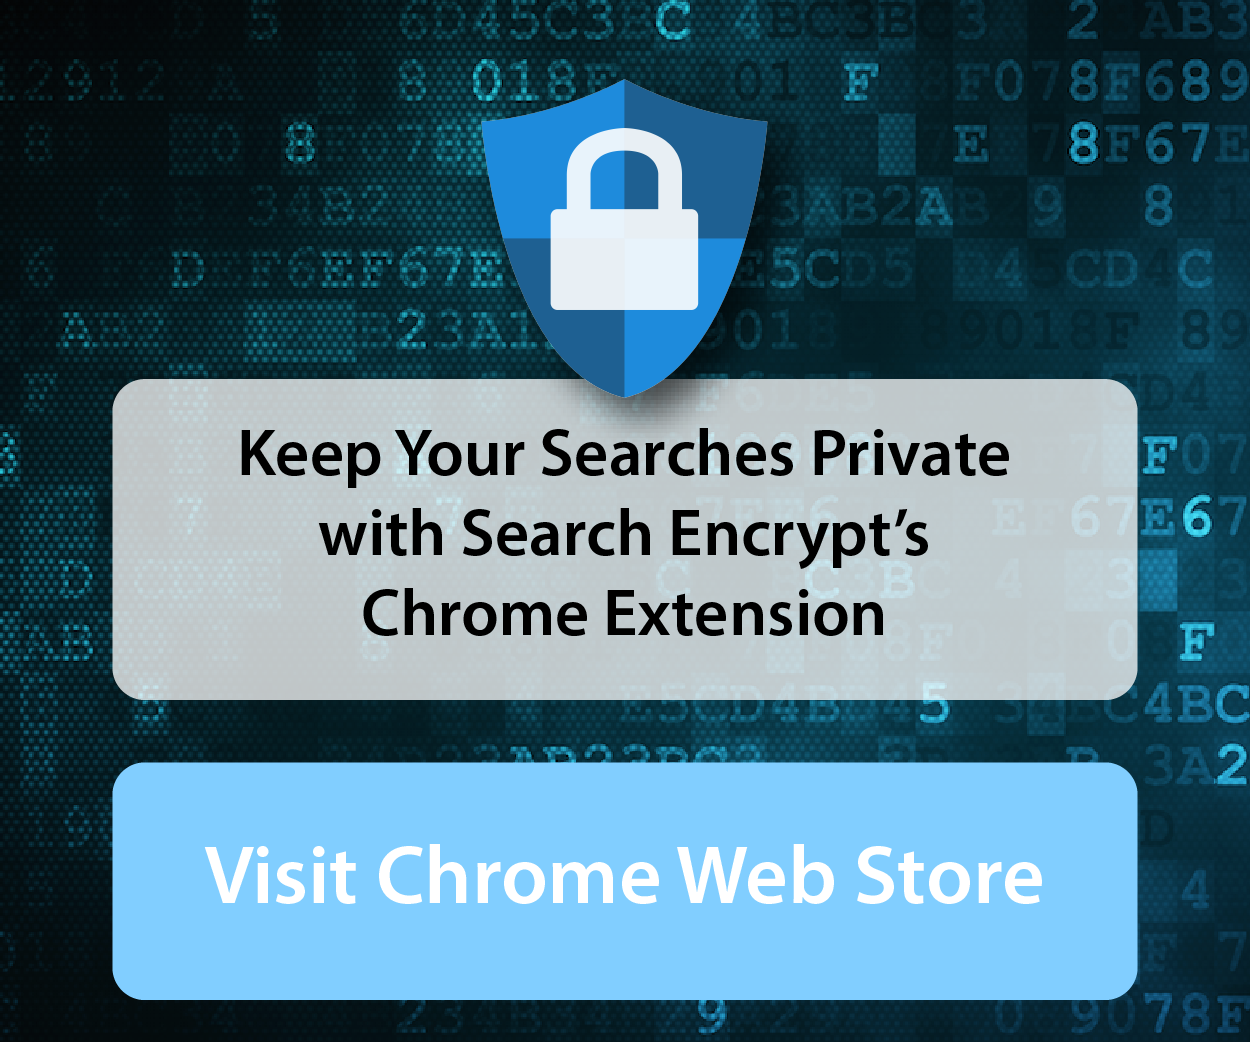 search-encrypt-chrome-extension